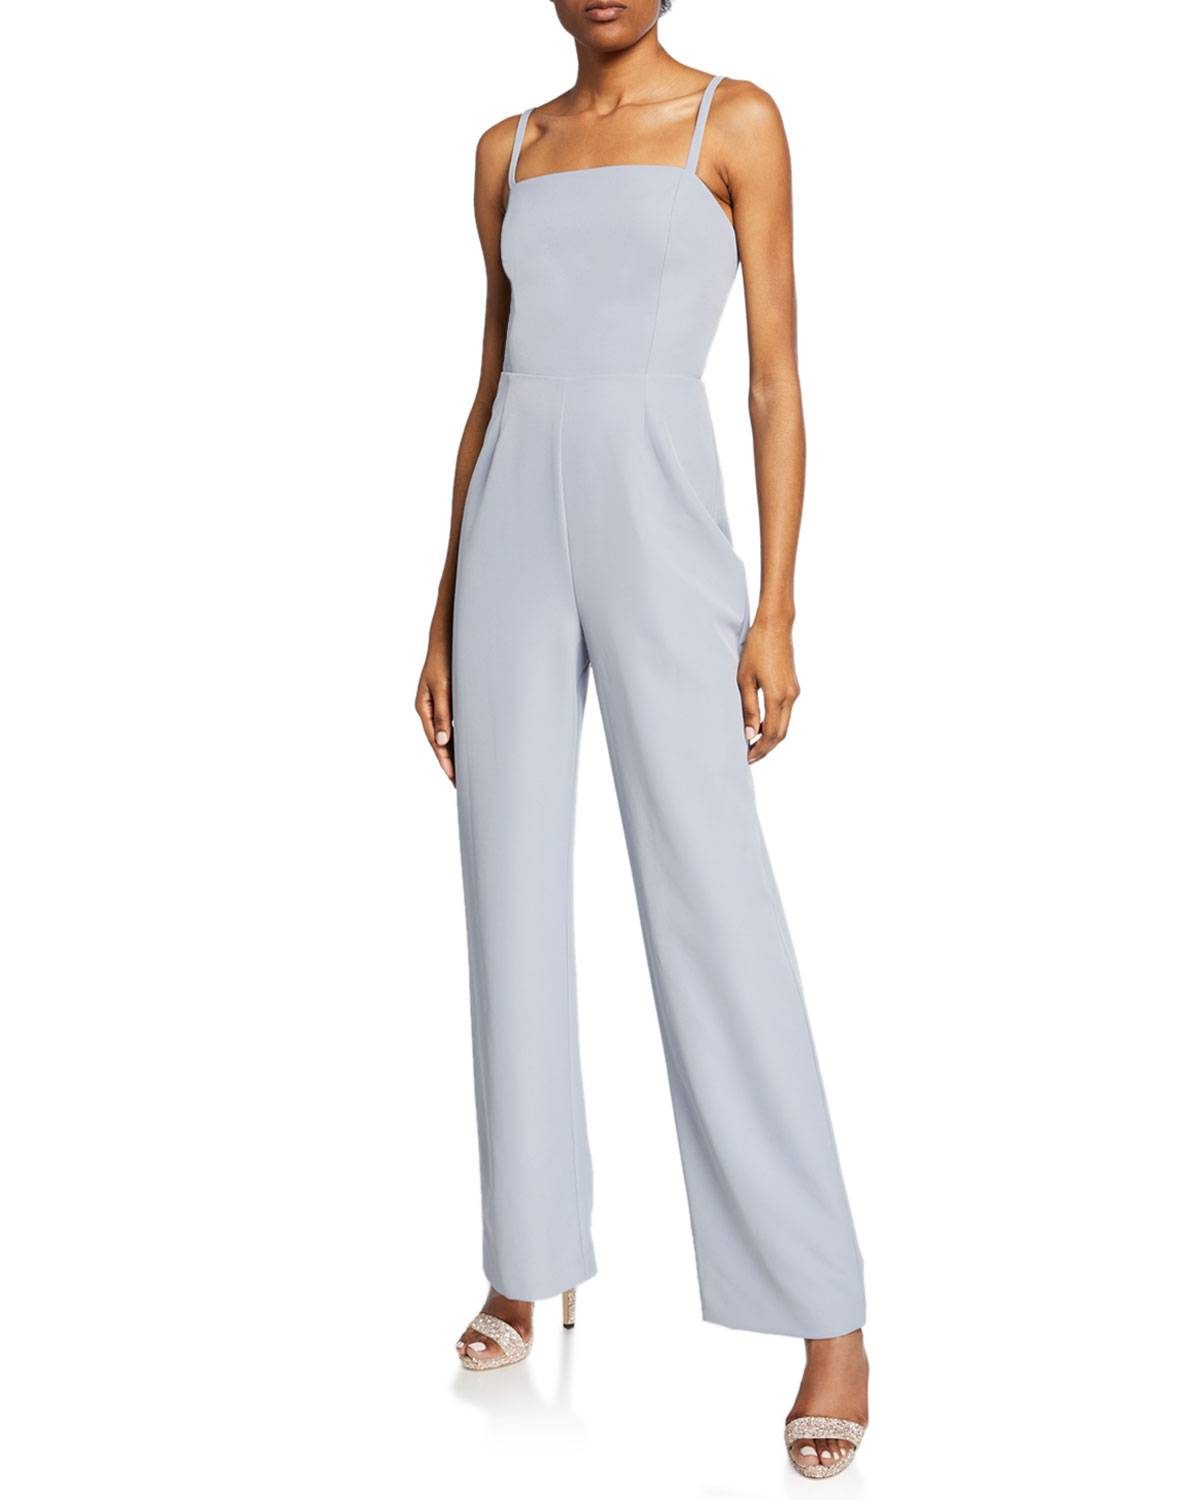 WAYF The Charlize Backless Jumpsuit